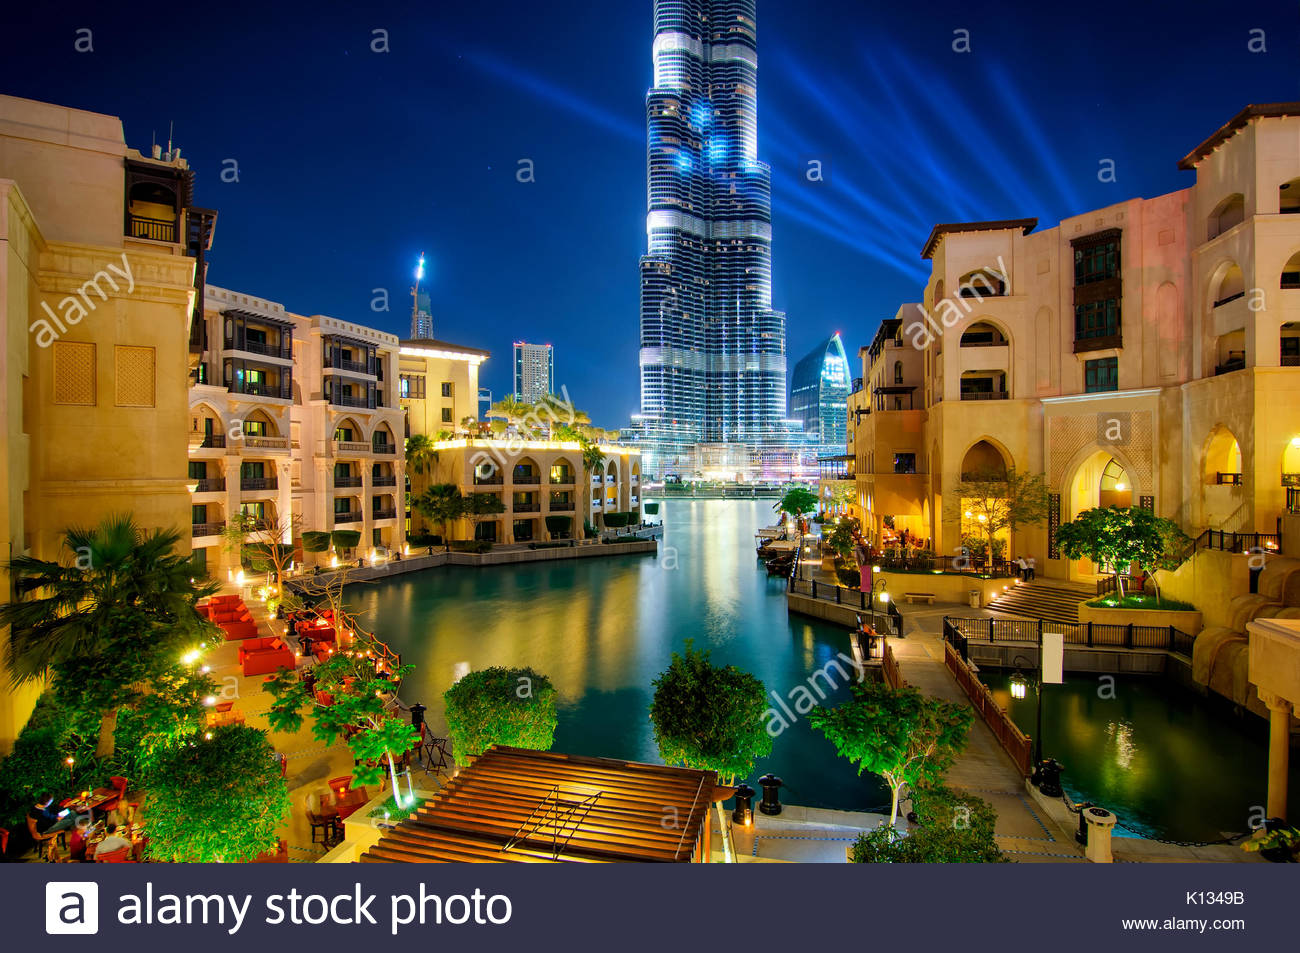 Beautiful famous downtown area in Dubai at night, Dubai, United Arab Emirates - Stock Image